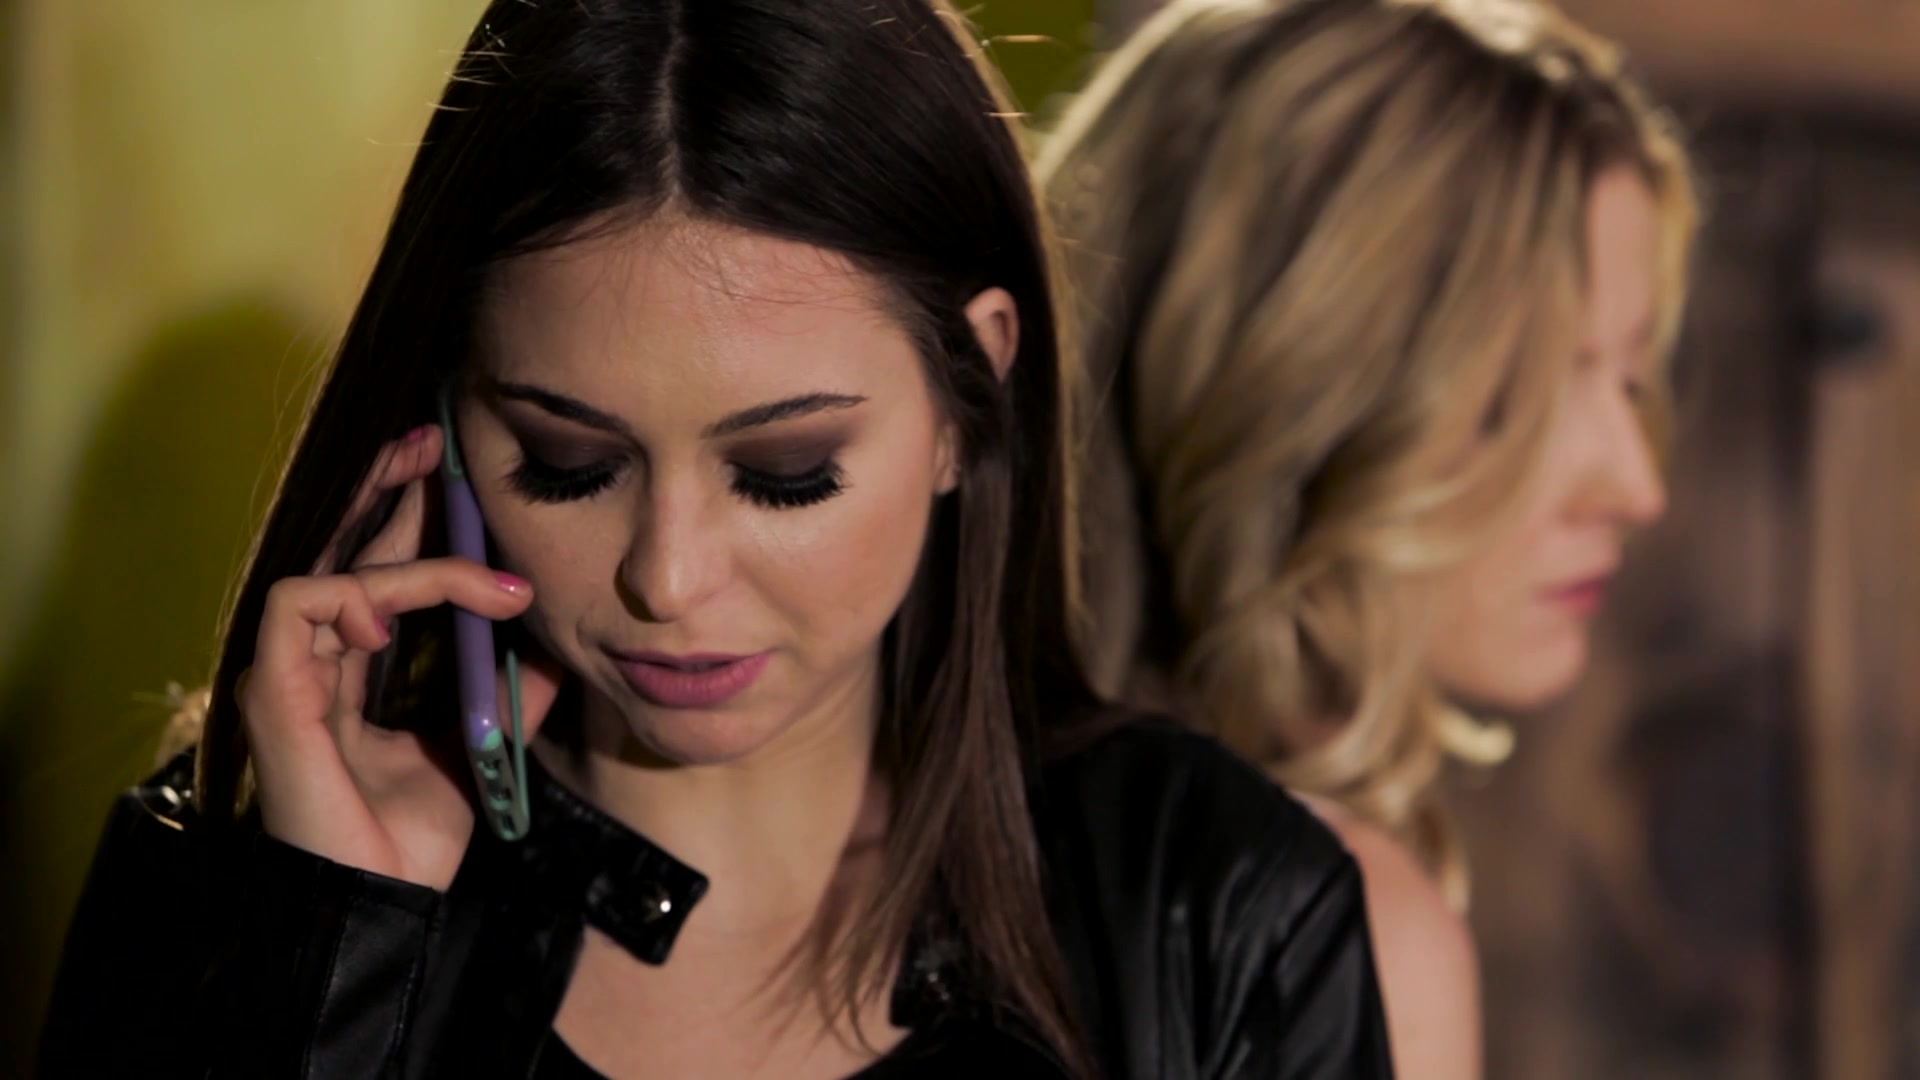 Scene with Reena Sky and Riley Reid - image 3 out of 20